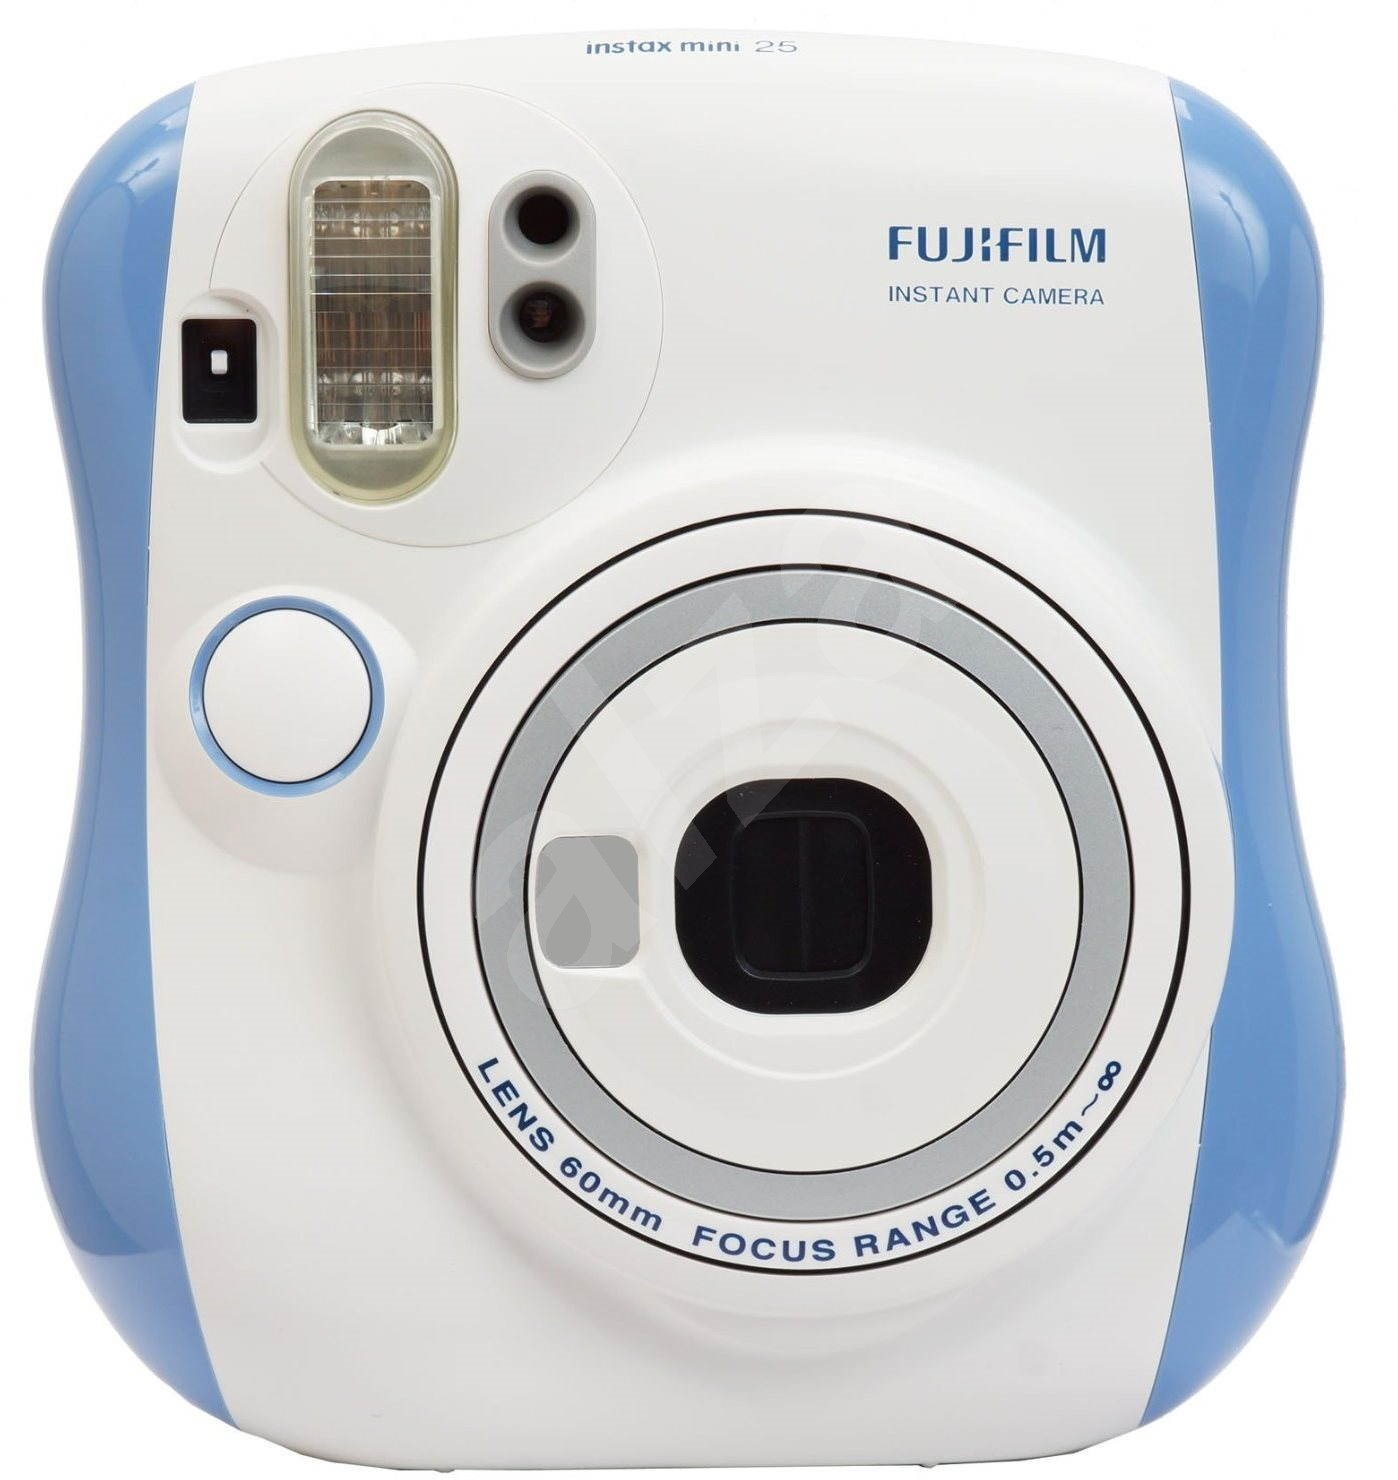 fujifilm instax mini 25 instant camera blue digital camera. Black Bedroom Furniture Sets. Home Design Ideas